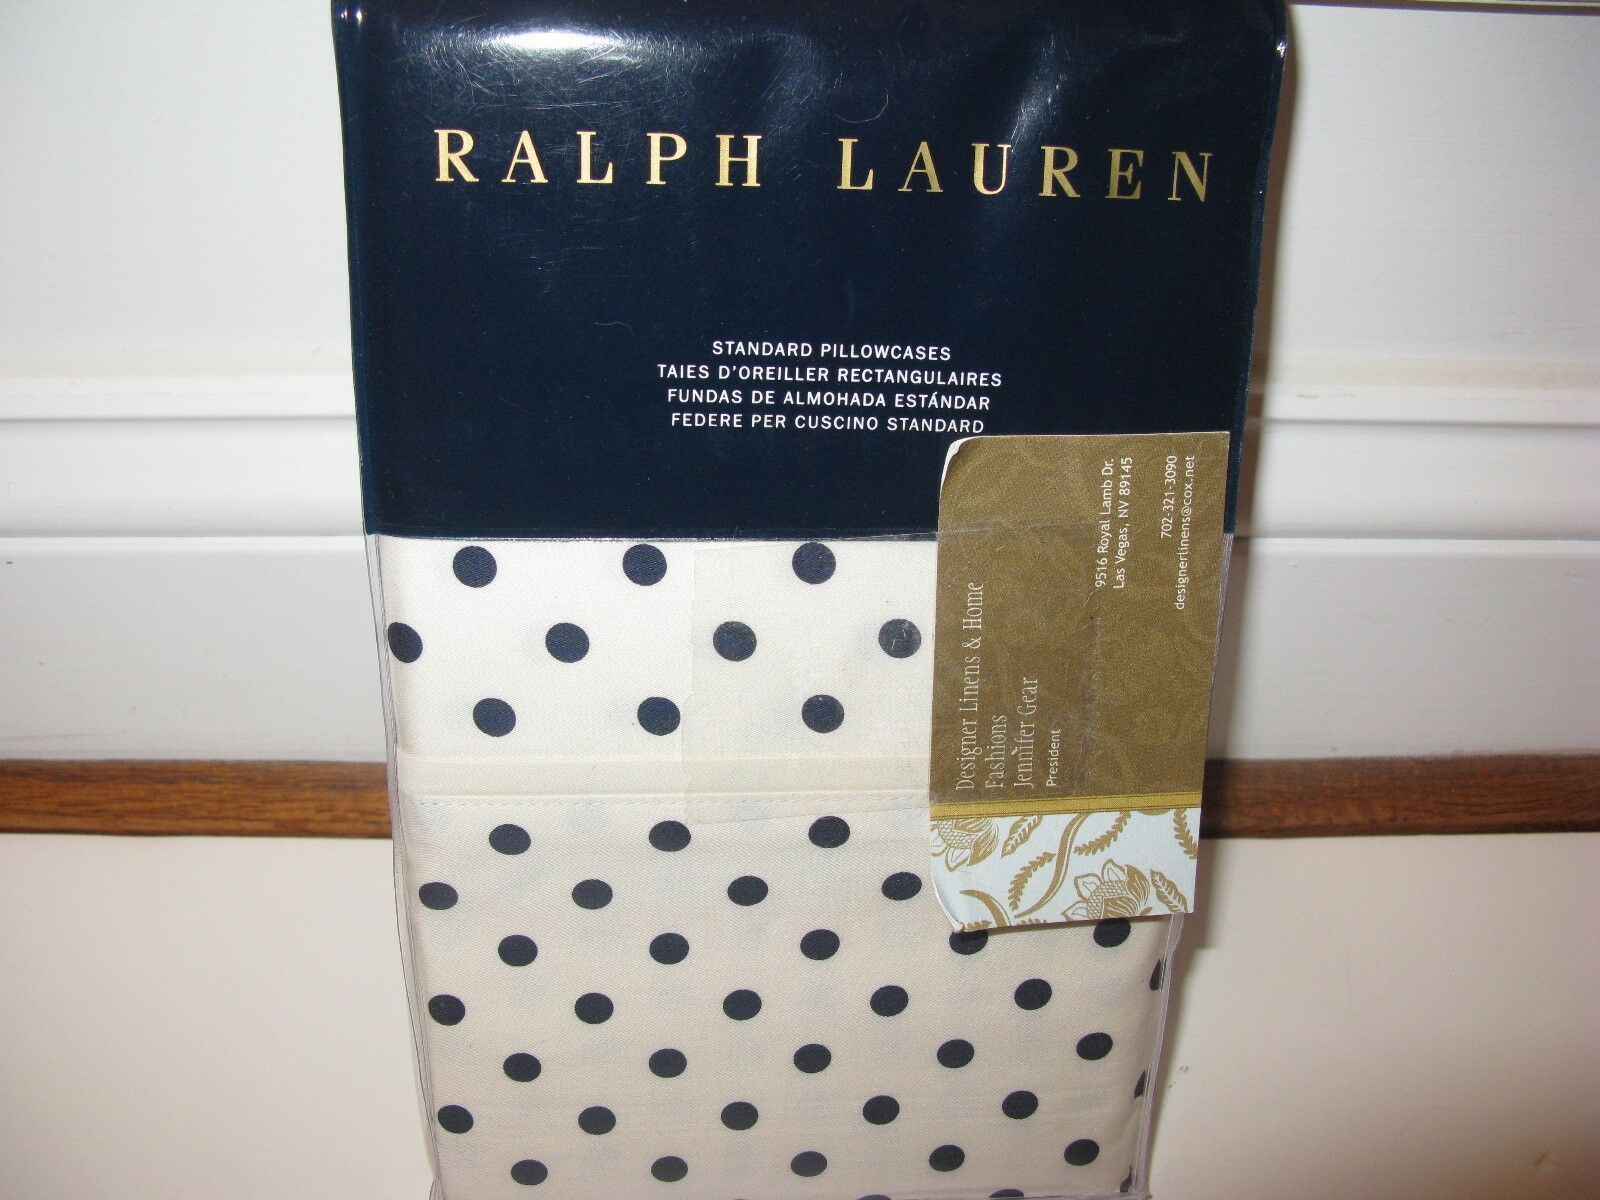 Lauren MODERN King Pillowcases NIP GLAMOUR Ralph nqzili2288